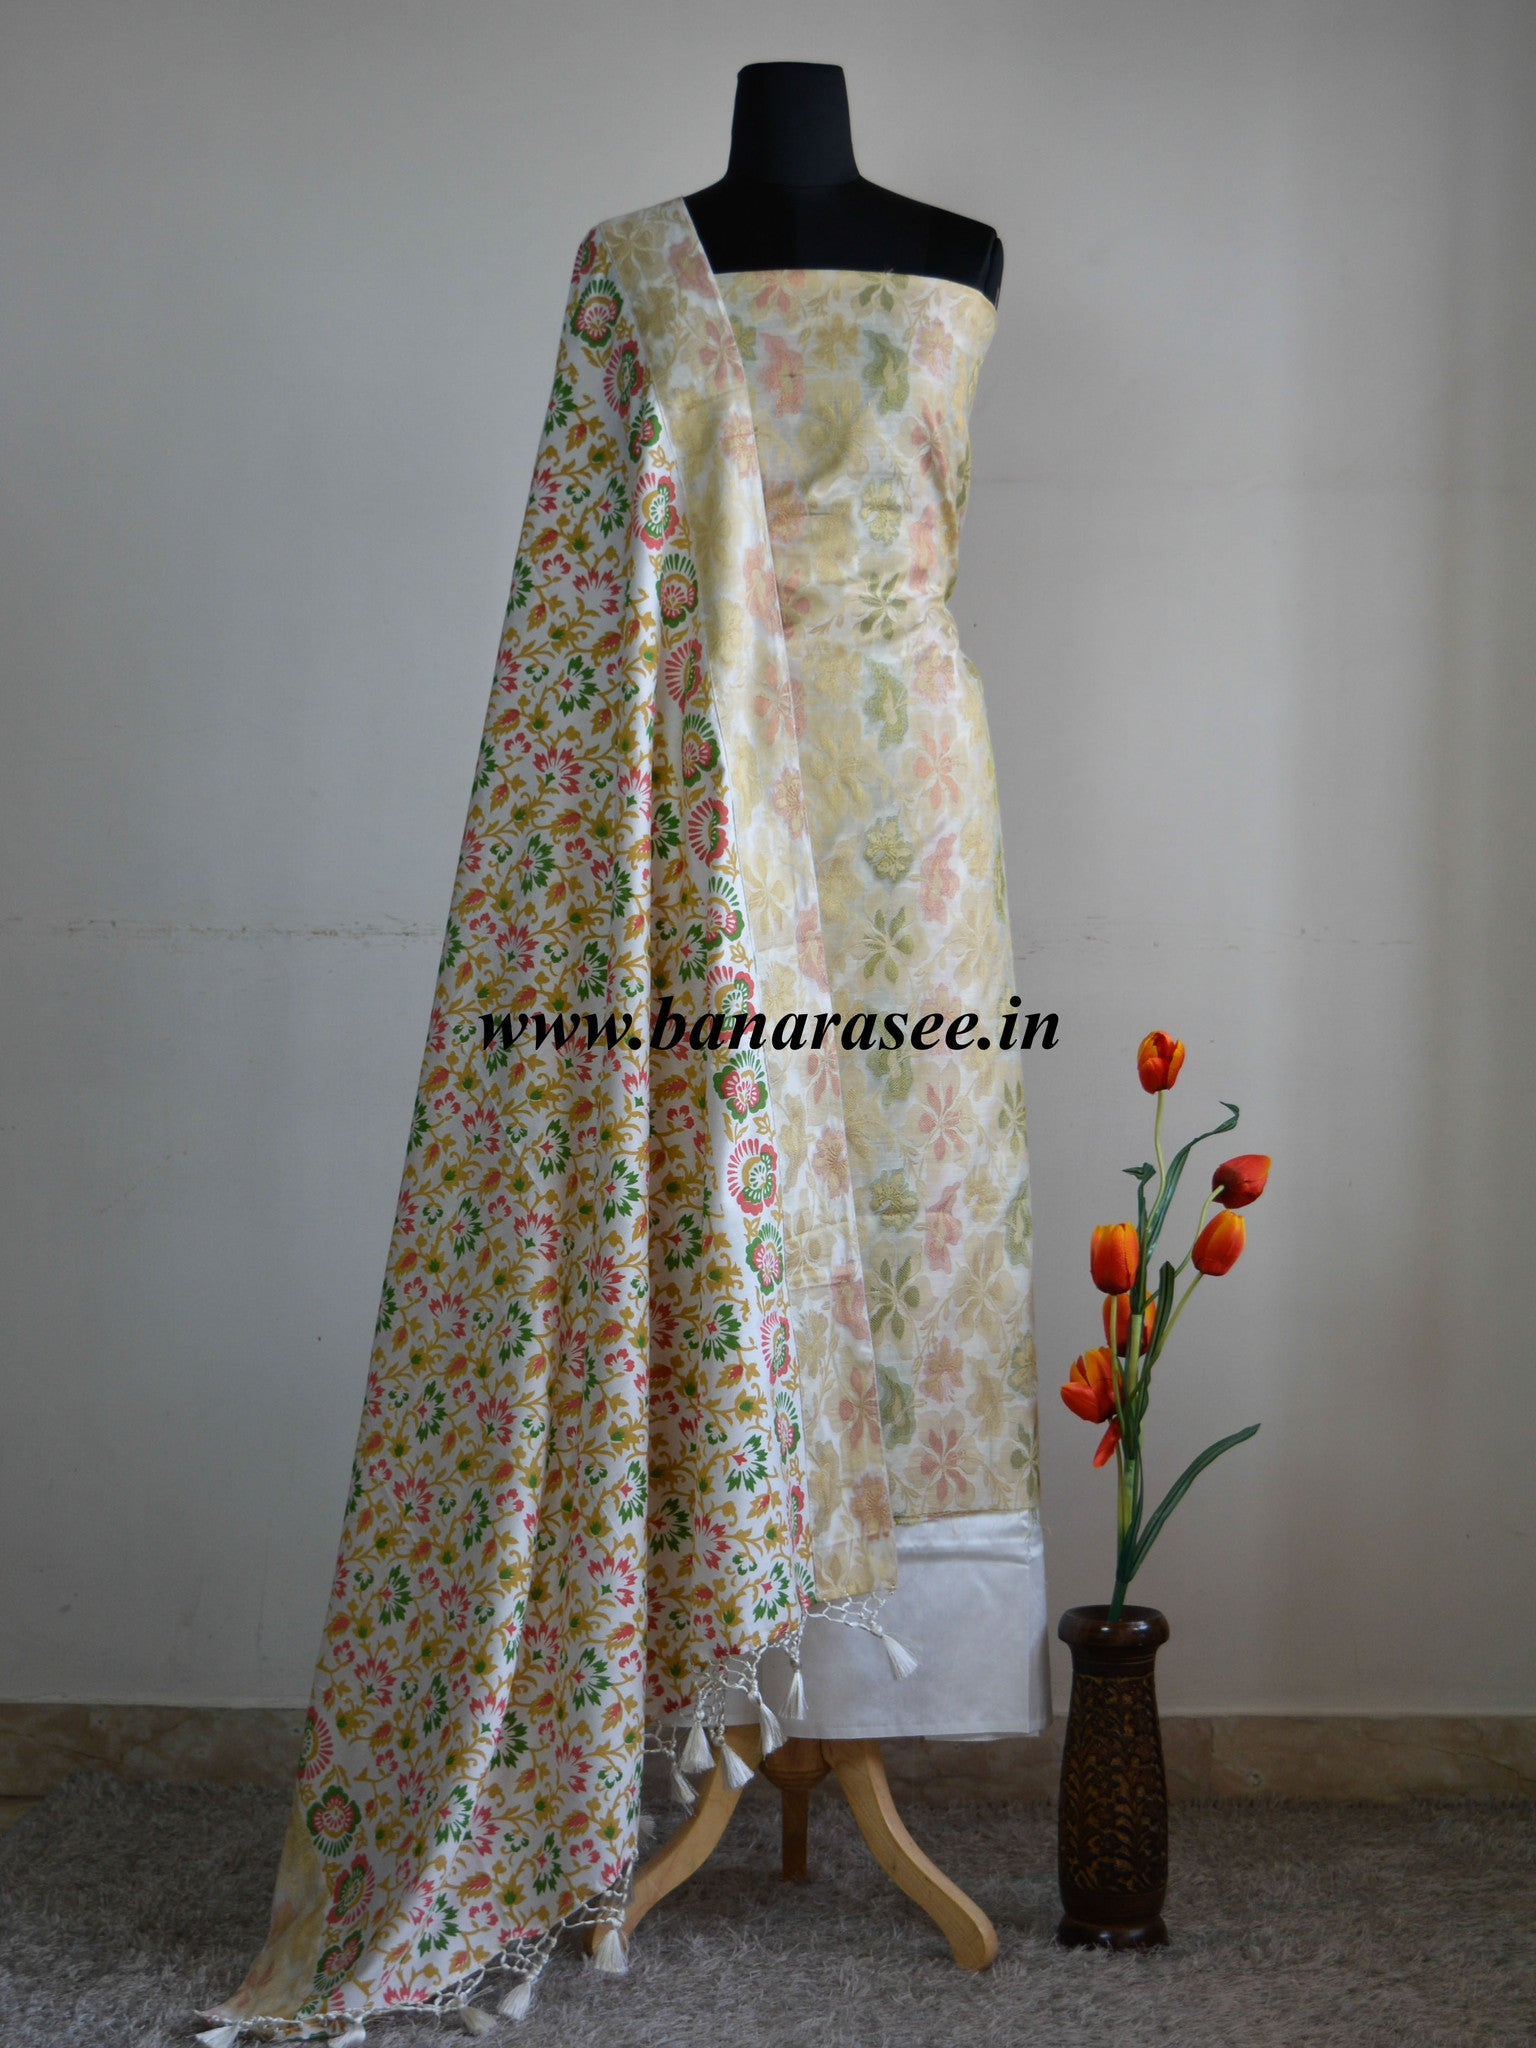 Banarasee Salwar Kameez Cotton Silk Resham & Zari Woven Fabric With Block Printed Dupatta-Off White